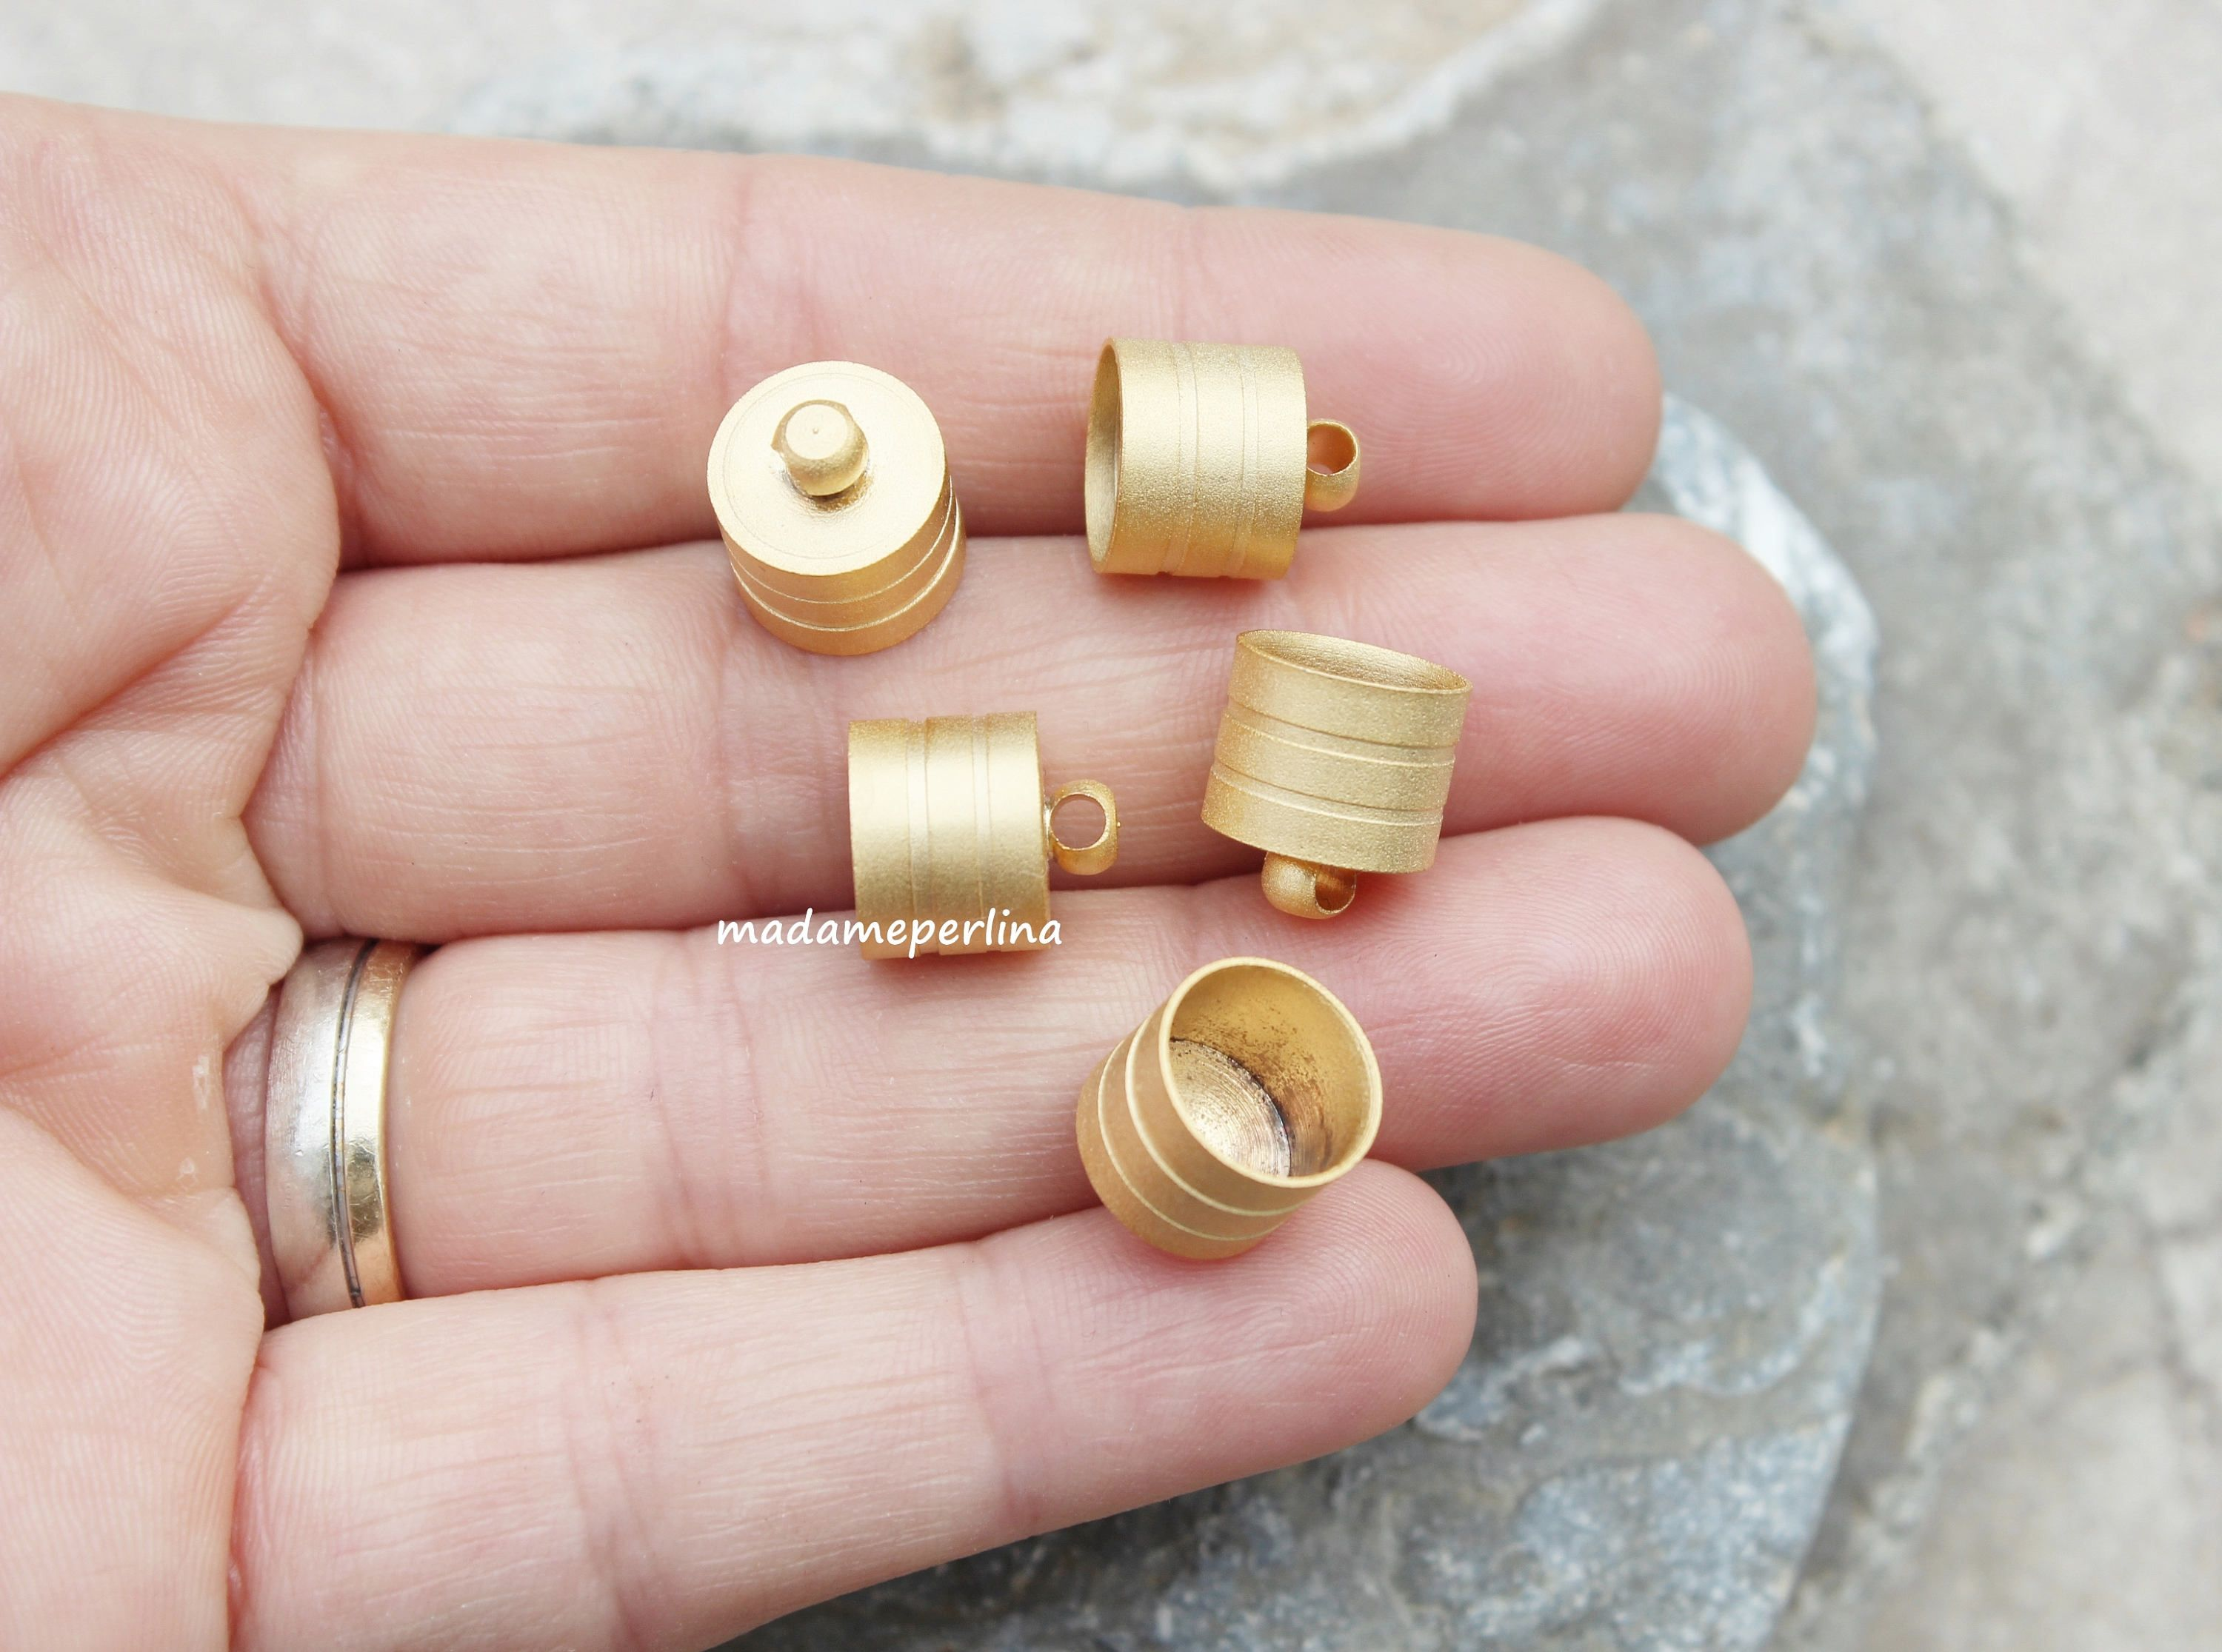 39+ Bead end caps for jewelry ideas in 2021